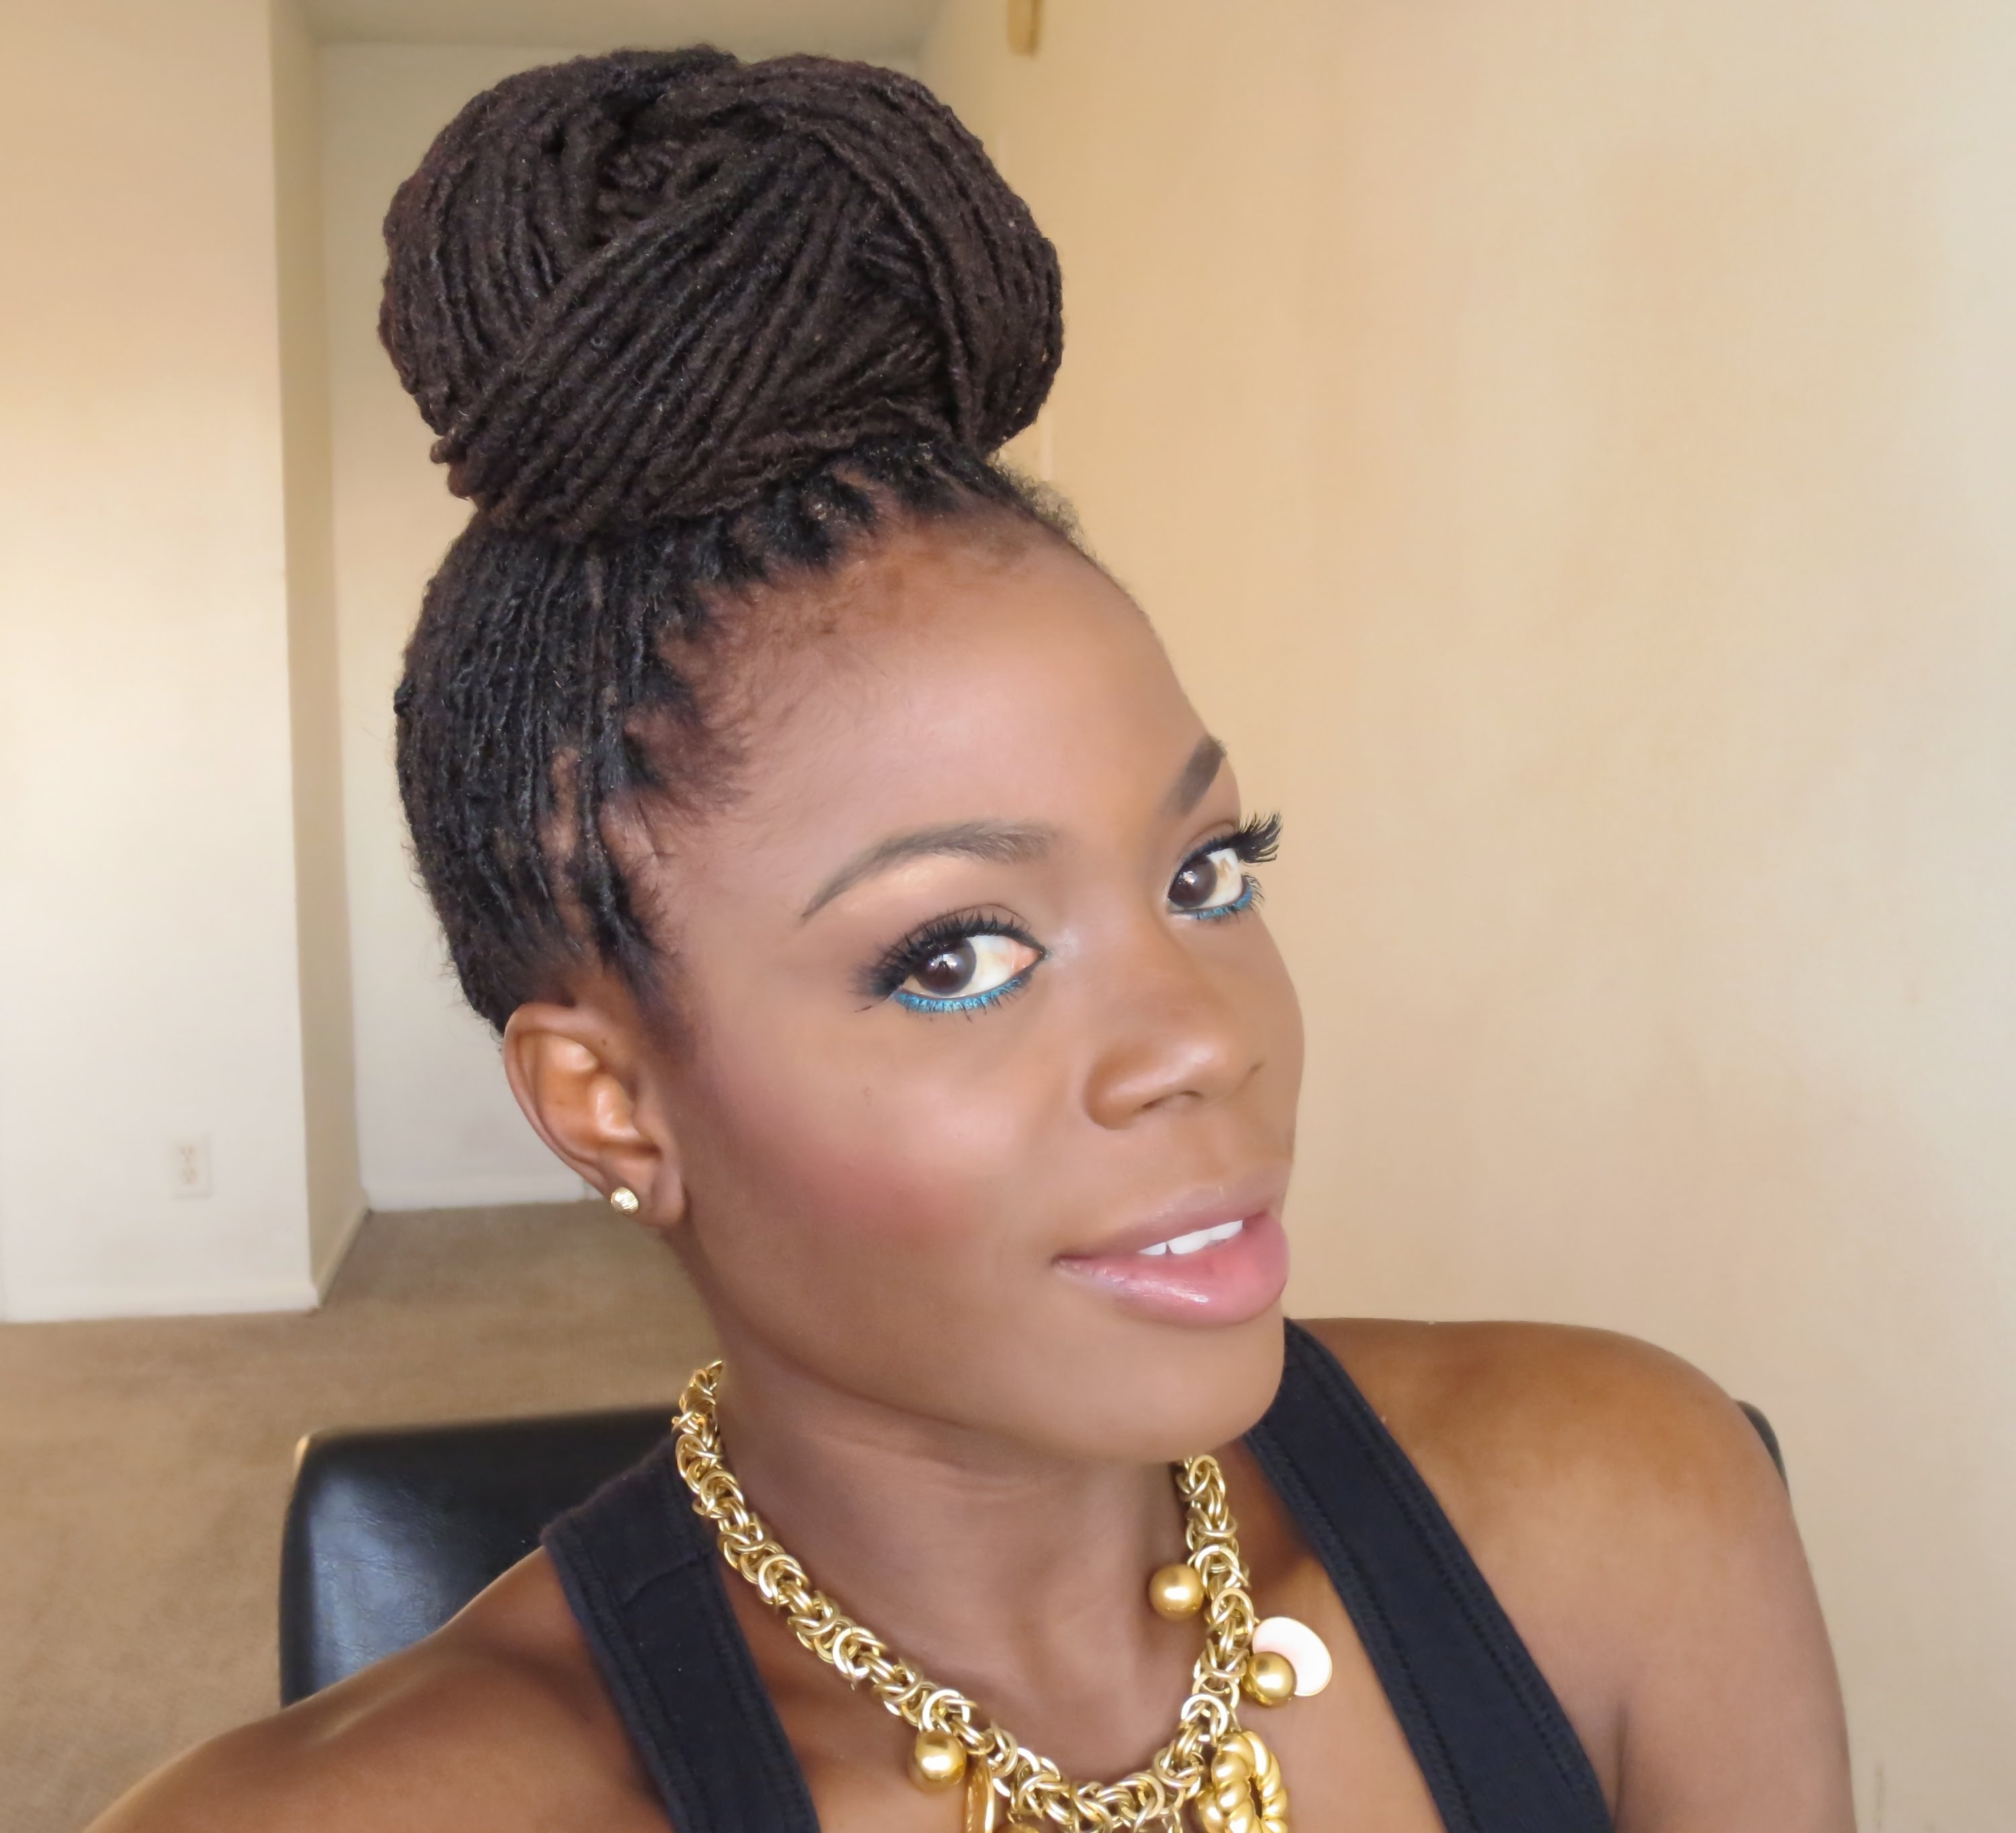 Beyonce Inspired Loc Hairstyle Bun Updo Tutorial (View 5 of 15)